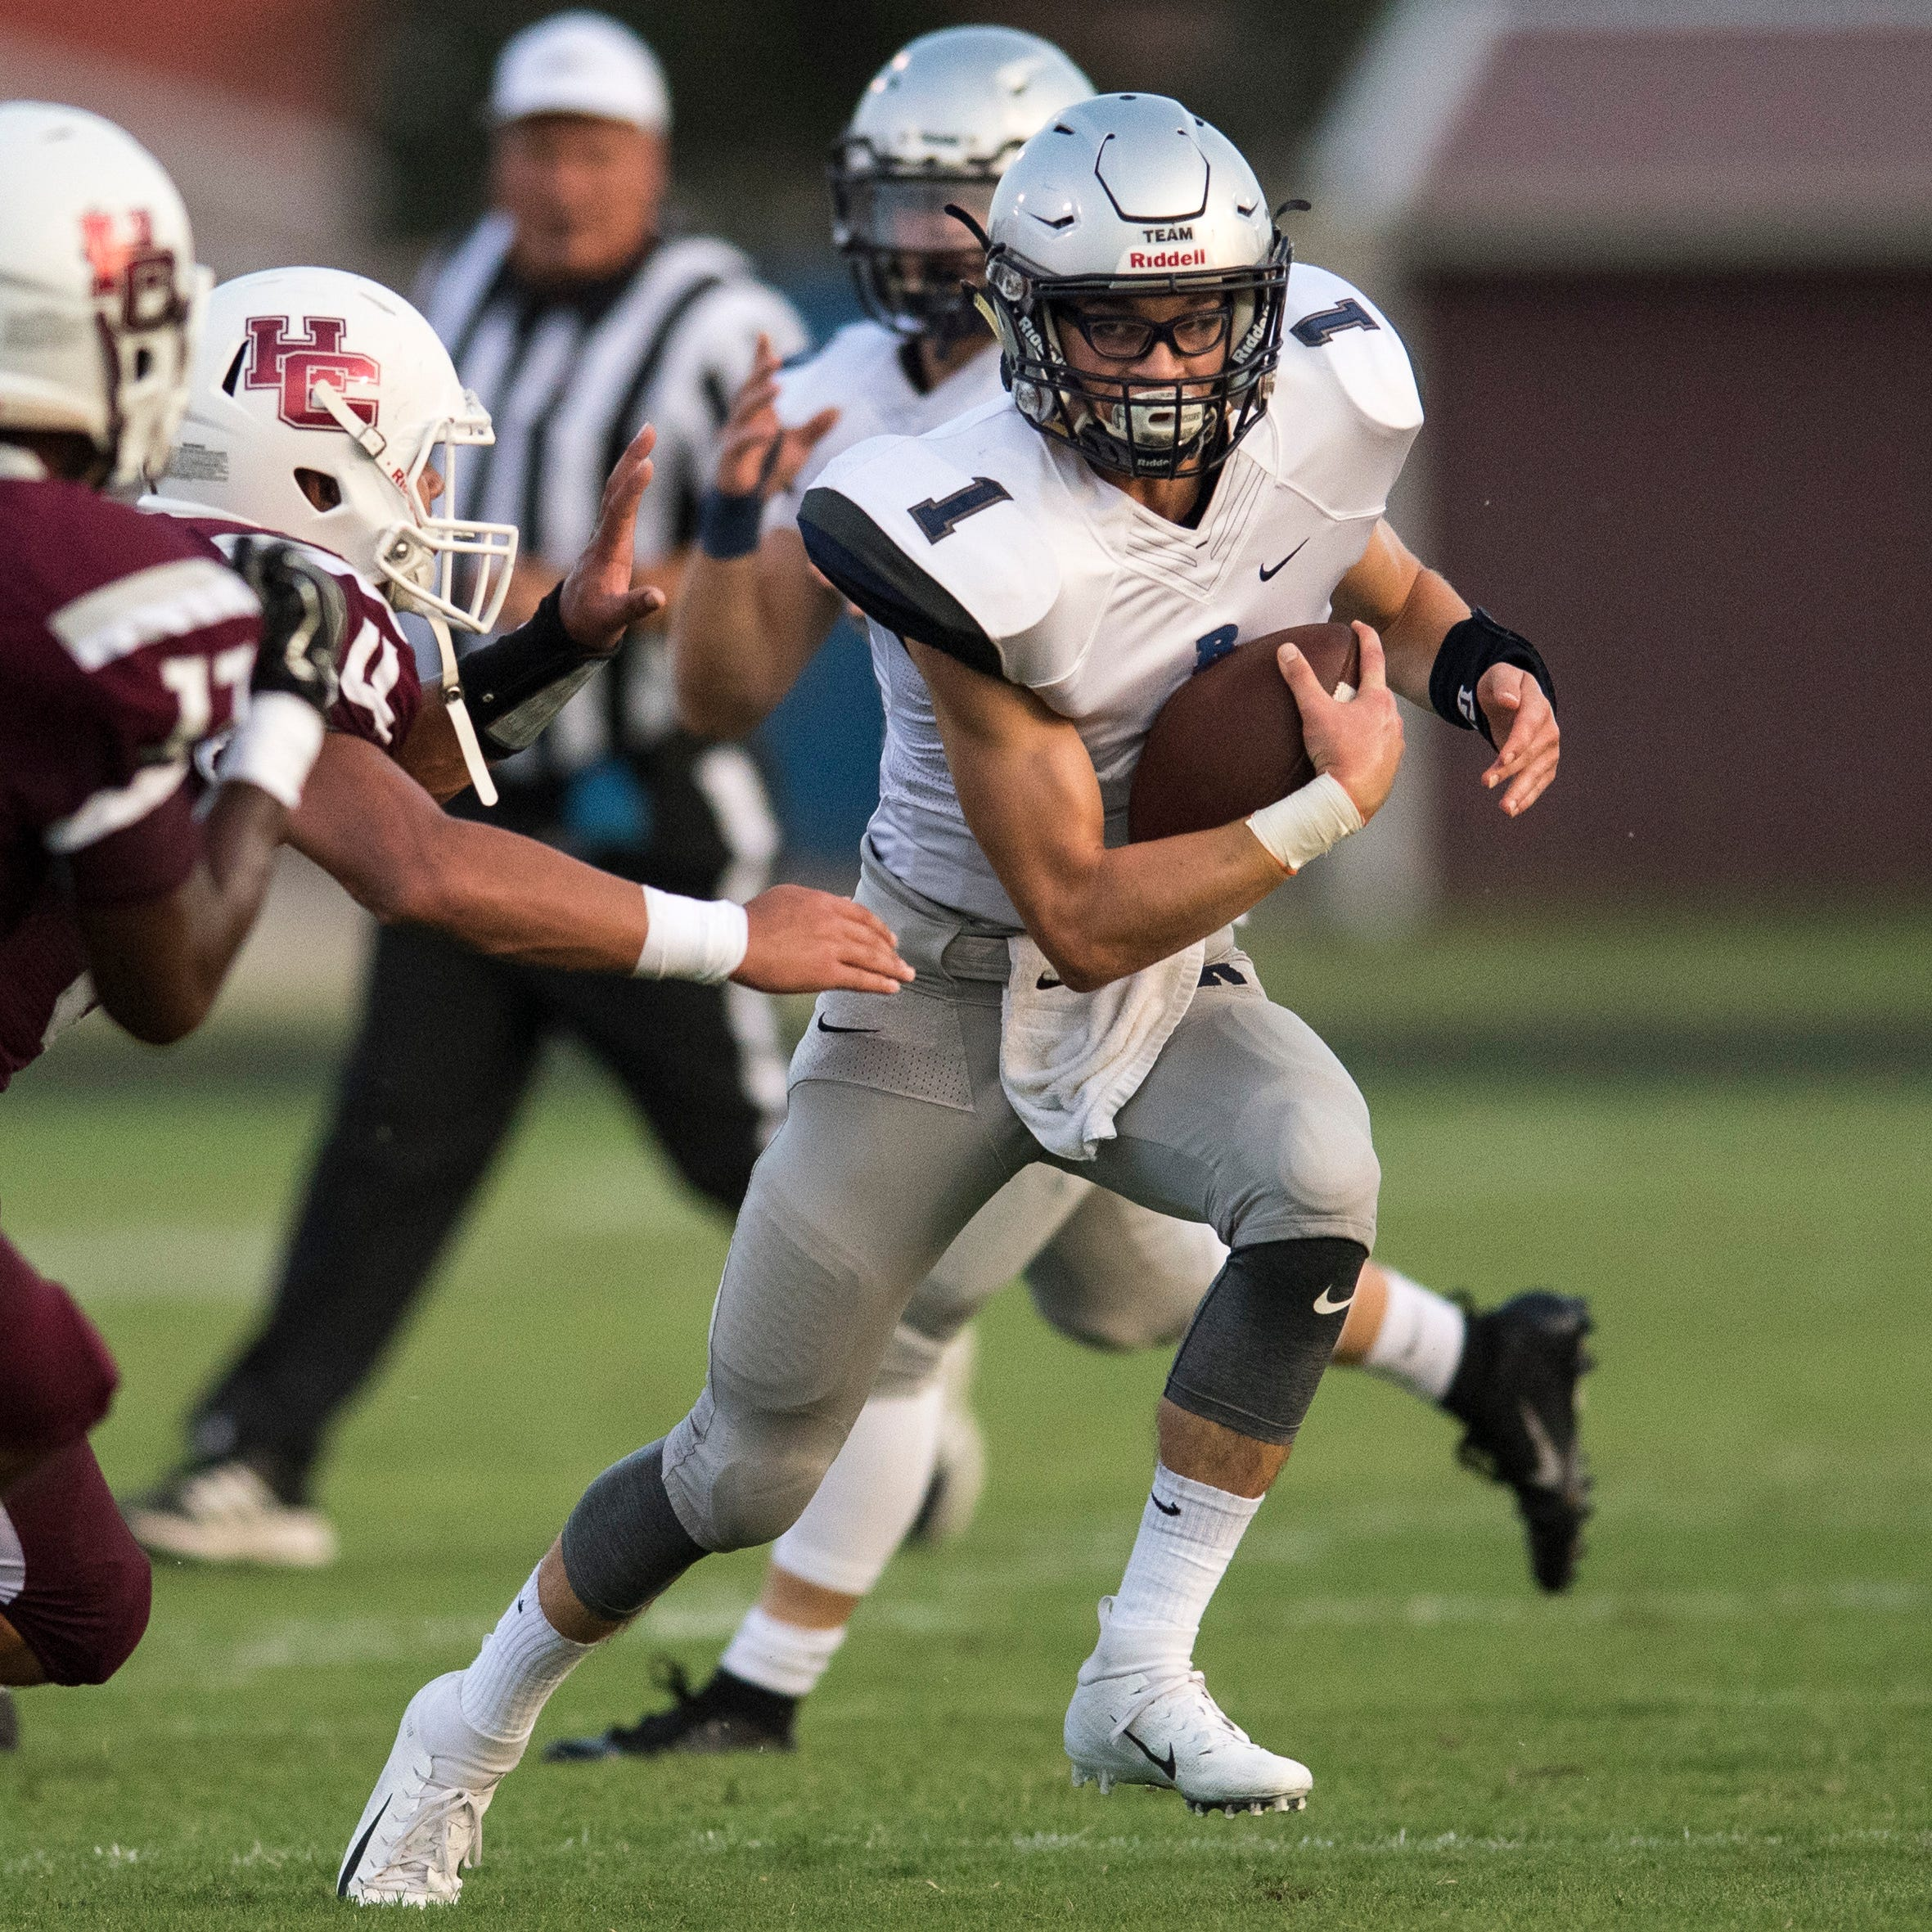 Reitz's Quarterback Eli Wiethop (1) attempts to run through Henderson County defense during the Reitz vs Henderson County football game Colonels Stadium Friday, August 17, 2018.